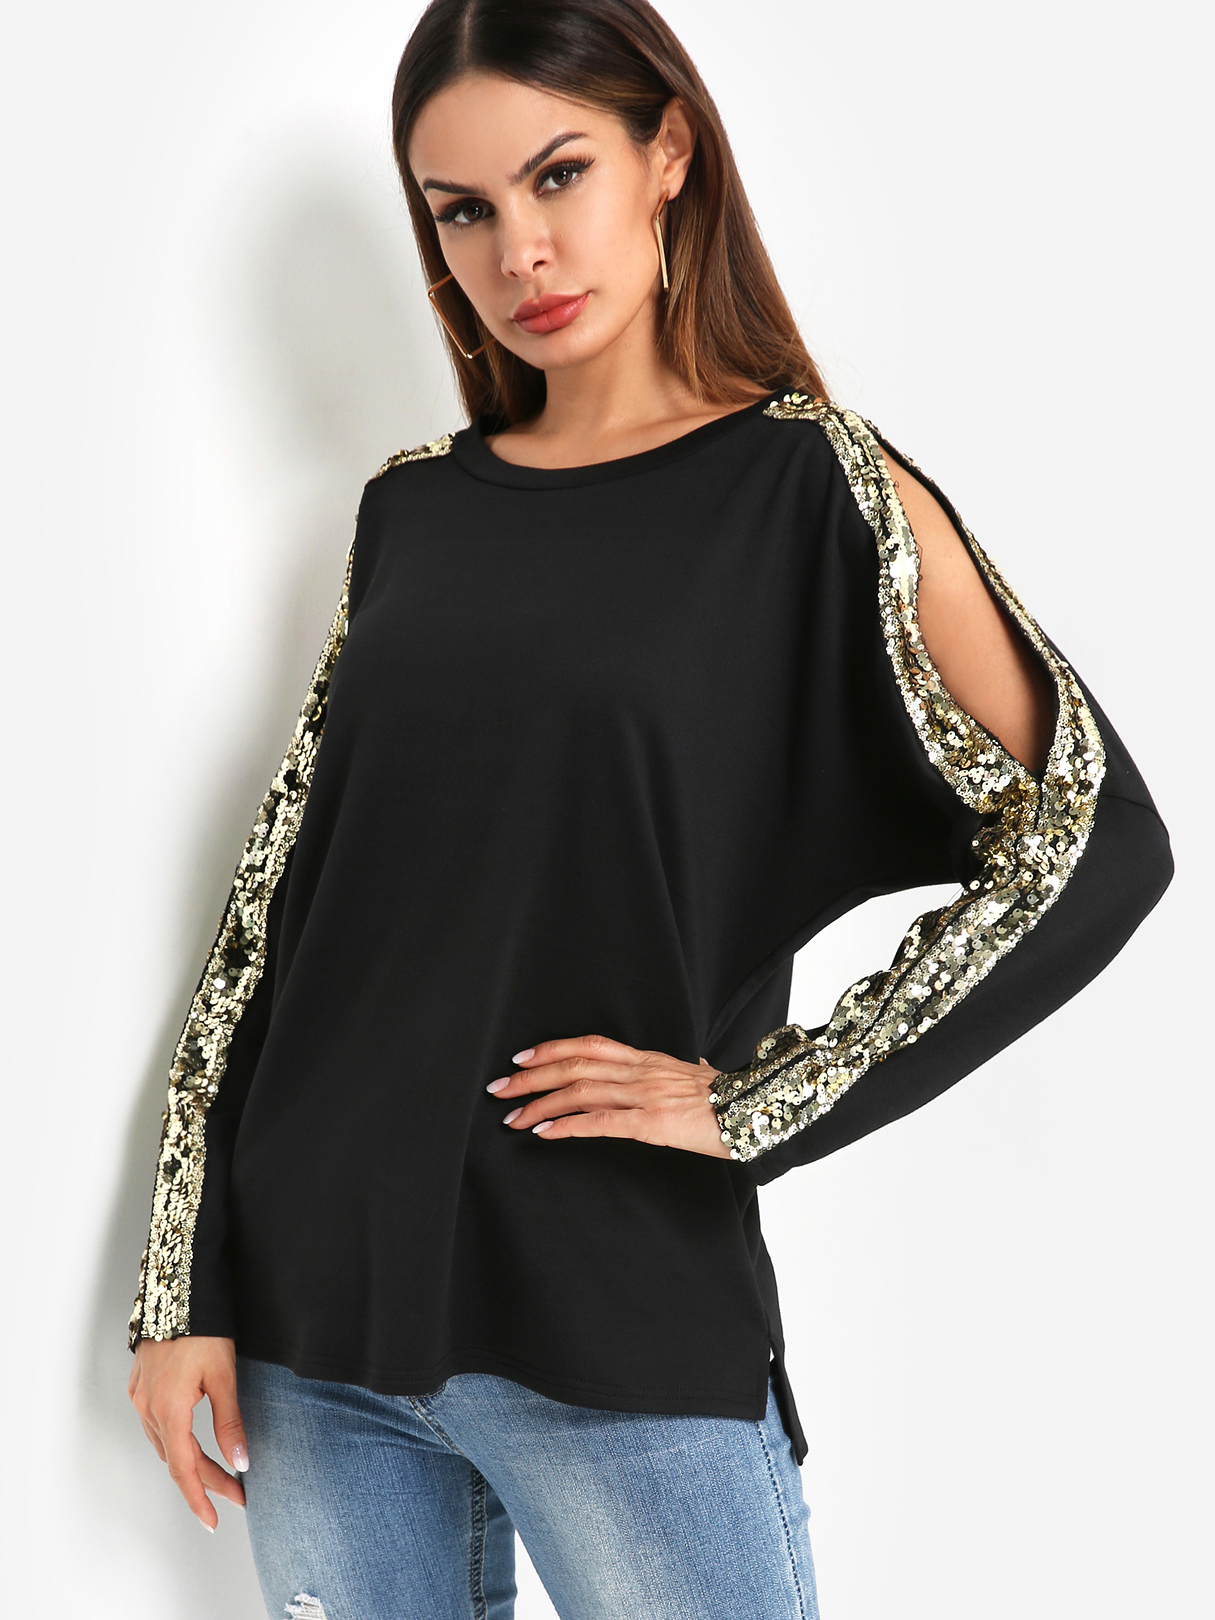 Black Round Neck Long Sleeved with Cutout Gloss Sequins Top